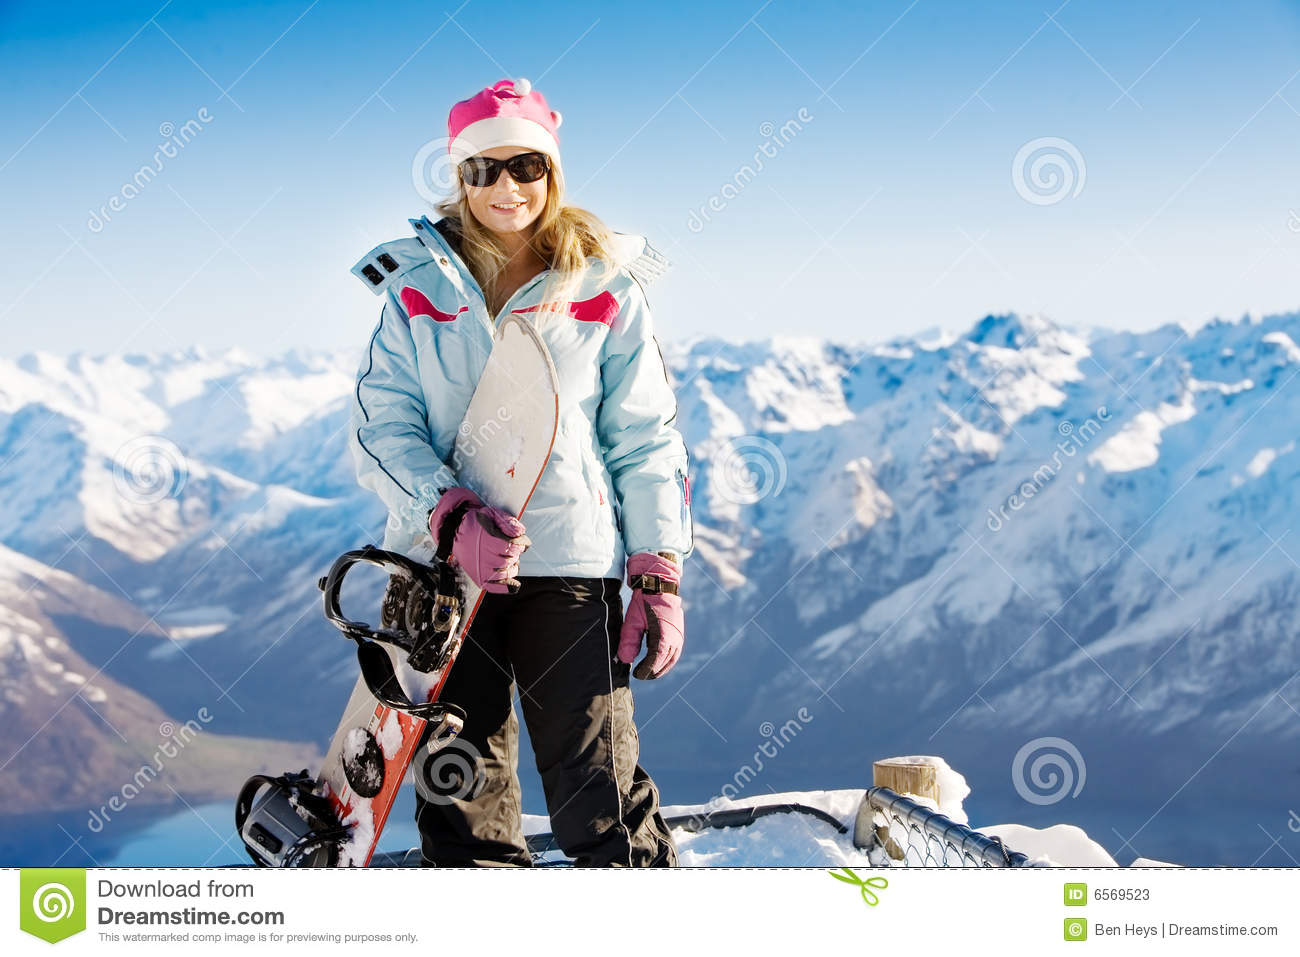 Woman holding snowboard with mountains in background.